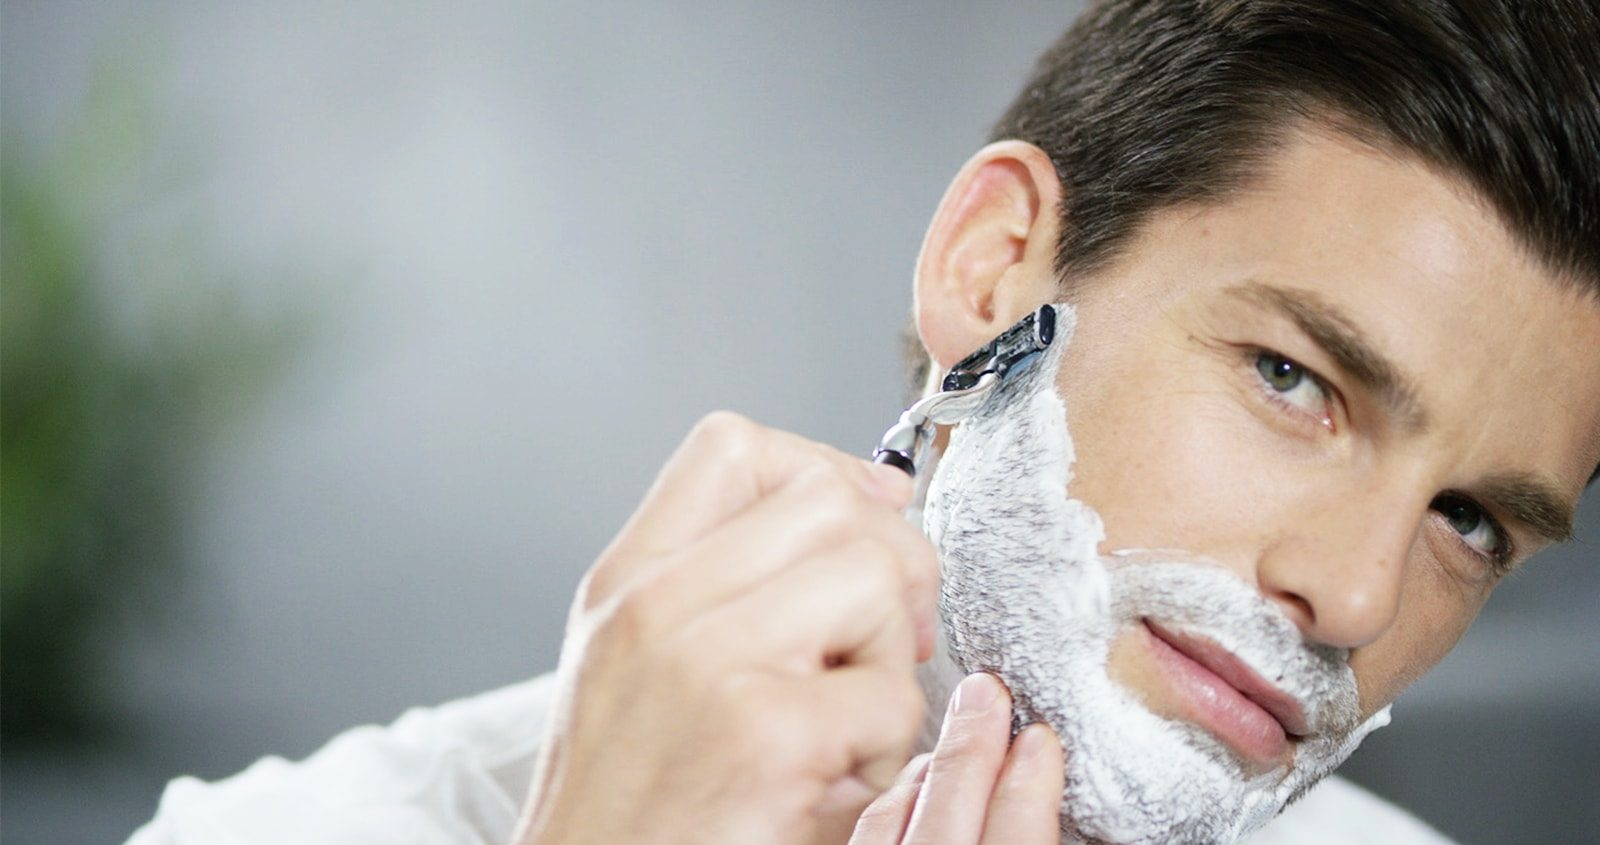 Ways To Get Rid Of Razor Bumps Fast